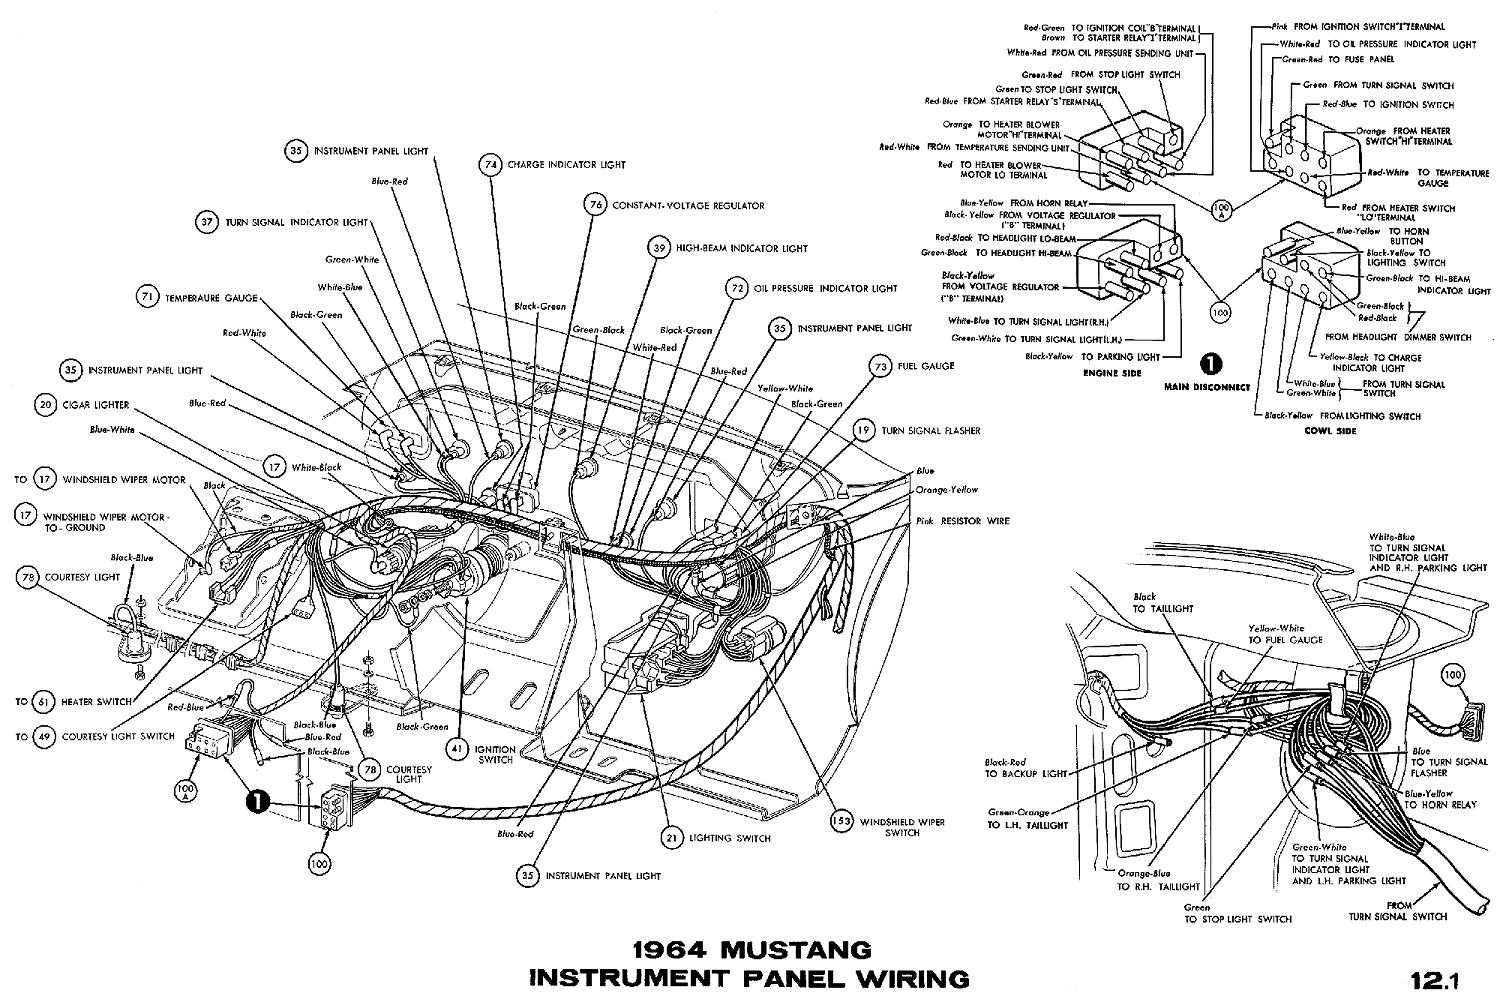 1966 Mustang Dash Light Wiring Diagram Trusted 94 1964 Instrument Panel